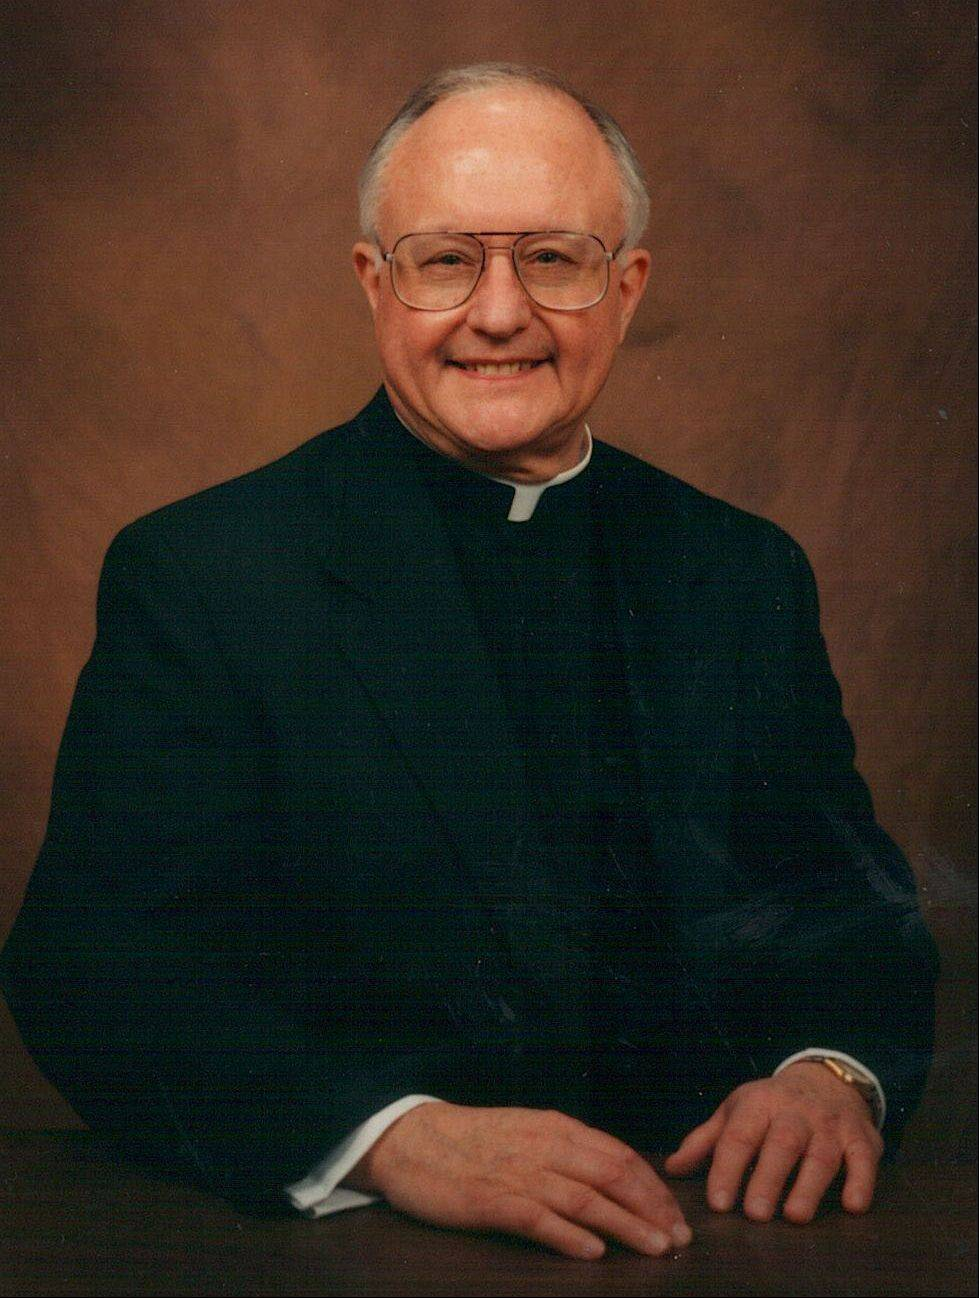 Rev. Robert Hoffman